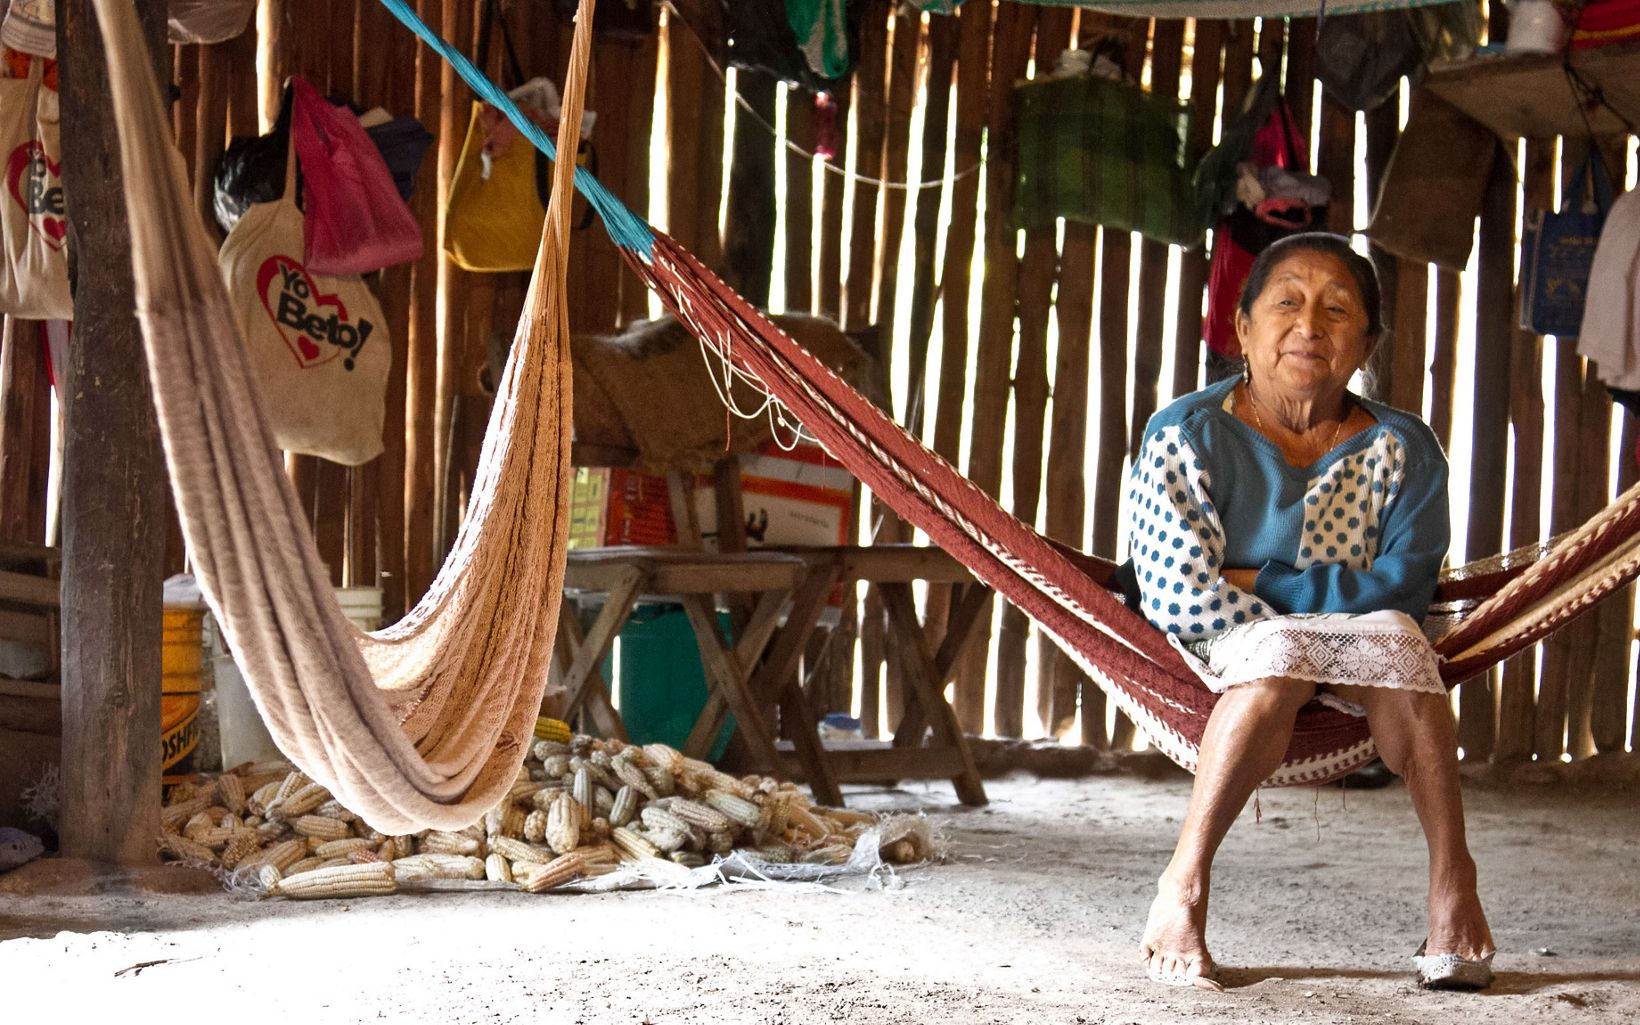 A woman relaxes in a hammock, Quitana Roo, México. In the Bethania ejido, where many families cook their food over an open fire in traditional thatched-roof homes that do not have toilets or running water, The Nature Conservancy has worked with partner Organizacion de Ejidos Productores Forestales de la Zona Maya S.C., to support sustainable forest management and income-producing activities. In the past, Bethania sold standing timber from their forests to logging companies to harvest. But now, by learning forestry and carpentry skills, ejido members can create jobs, eliminate the middle-man and sell finished wood products for a higher price.